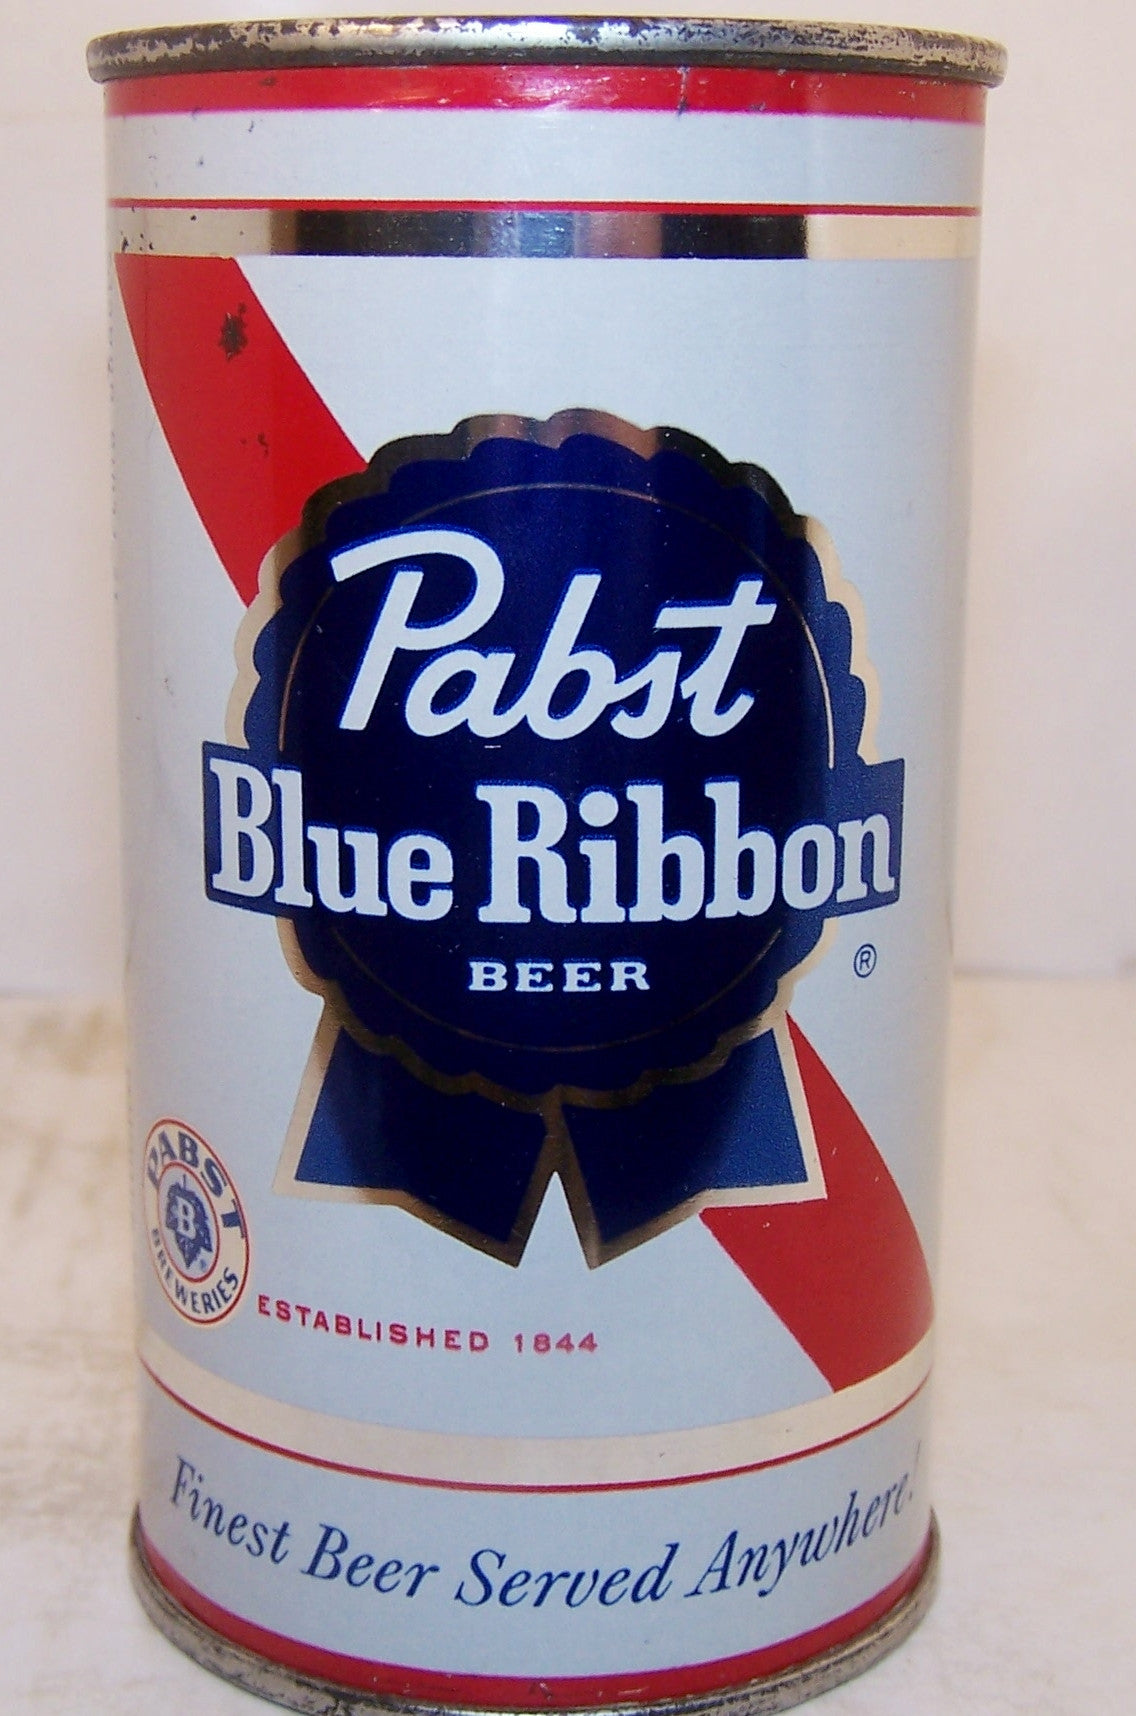 Pabst Blue Ribbon Beer, USBC 111-40 Grade 1/1+ - Sold 11/19/14